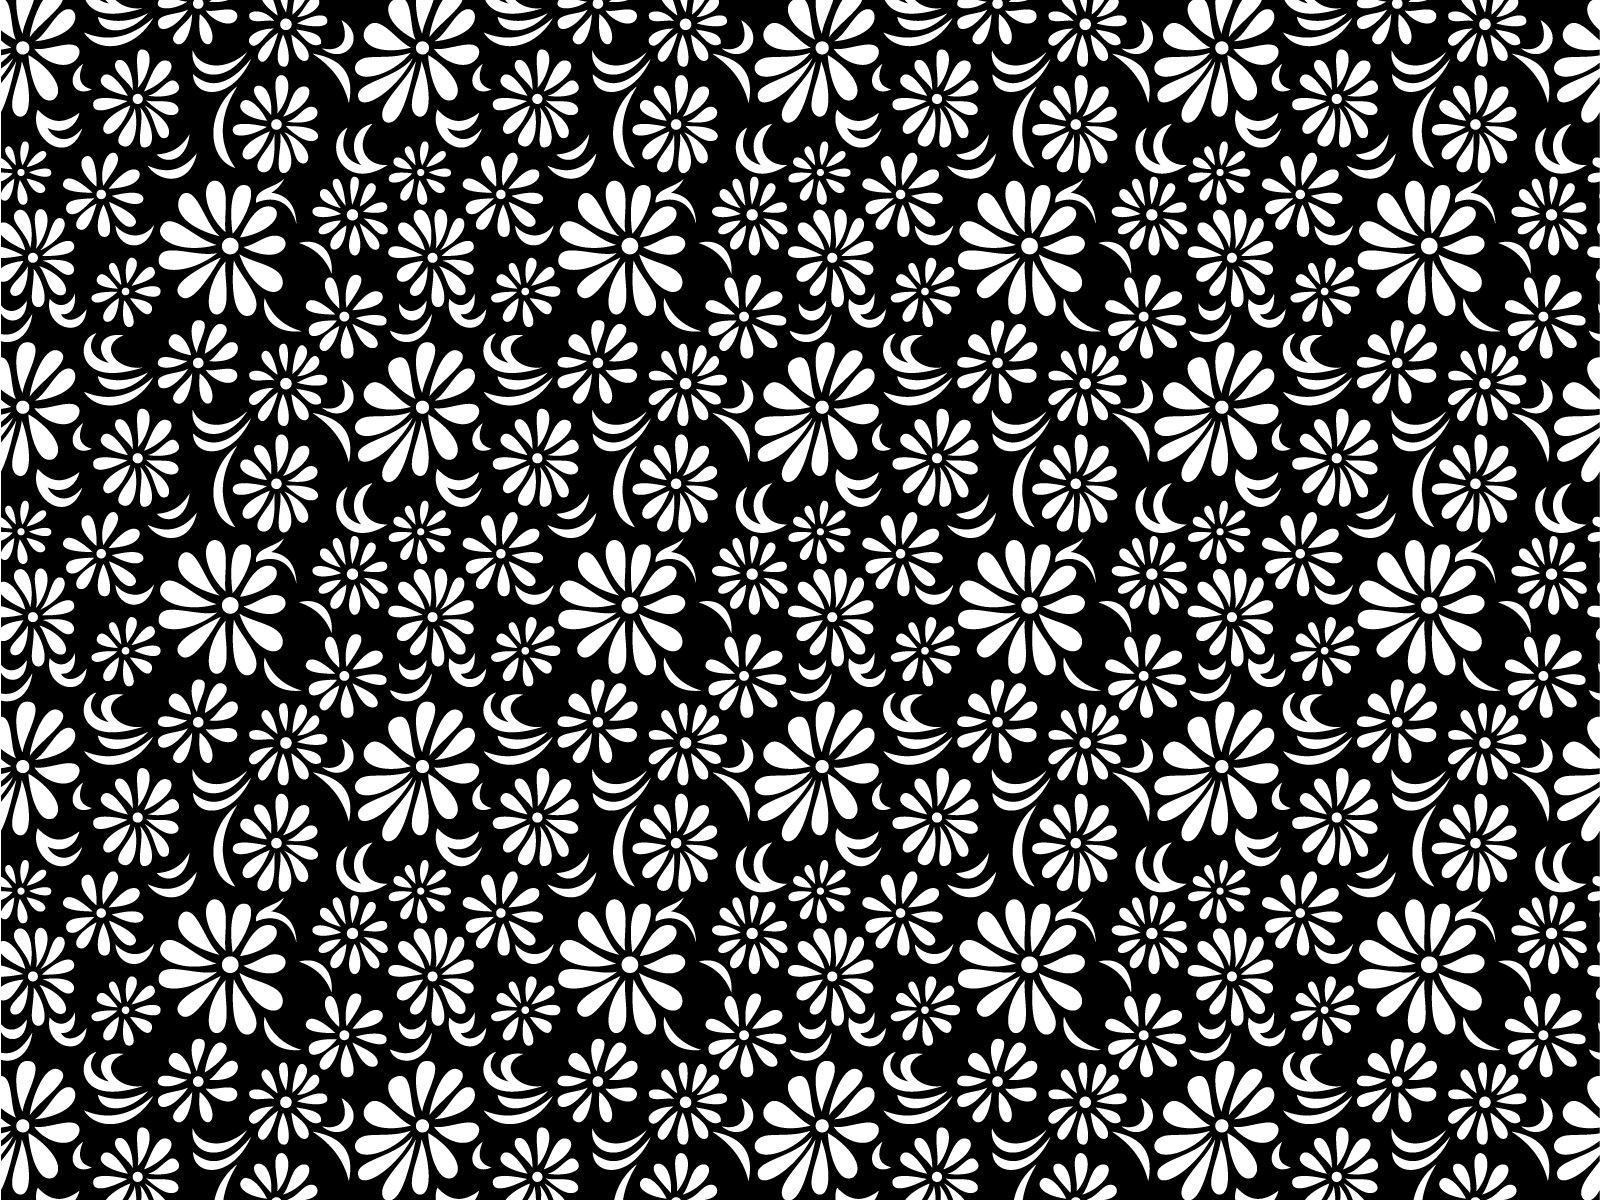 Black and White Floral Desktop Wallpaper